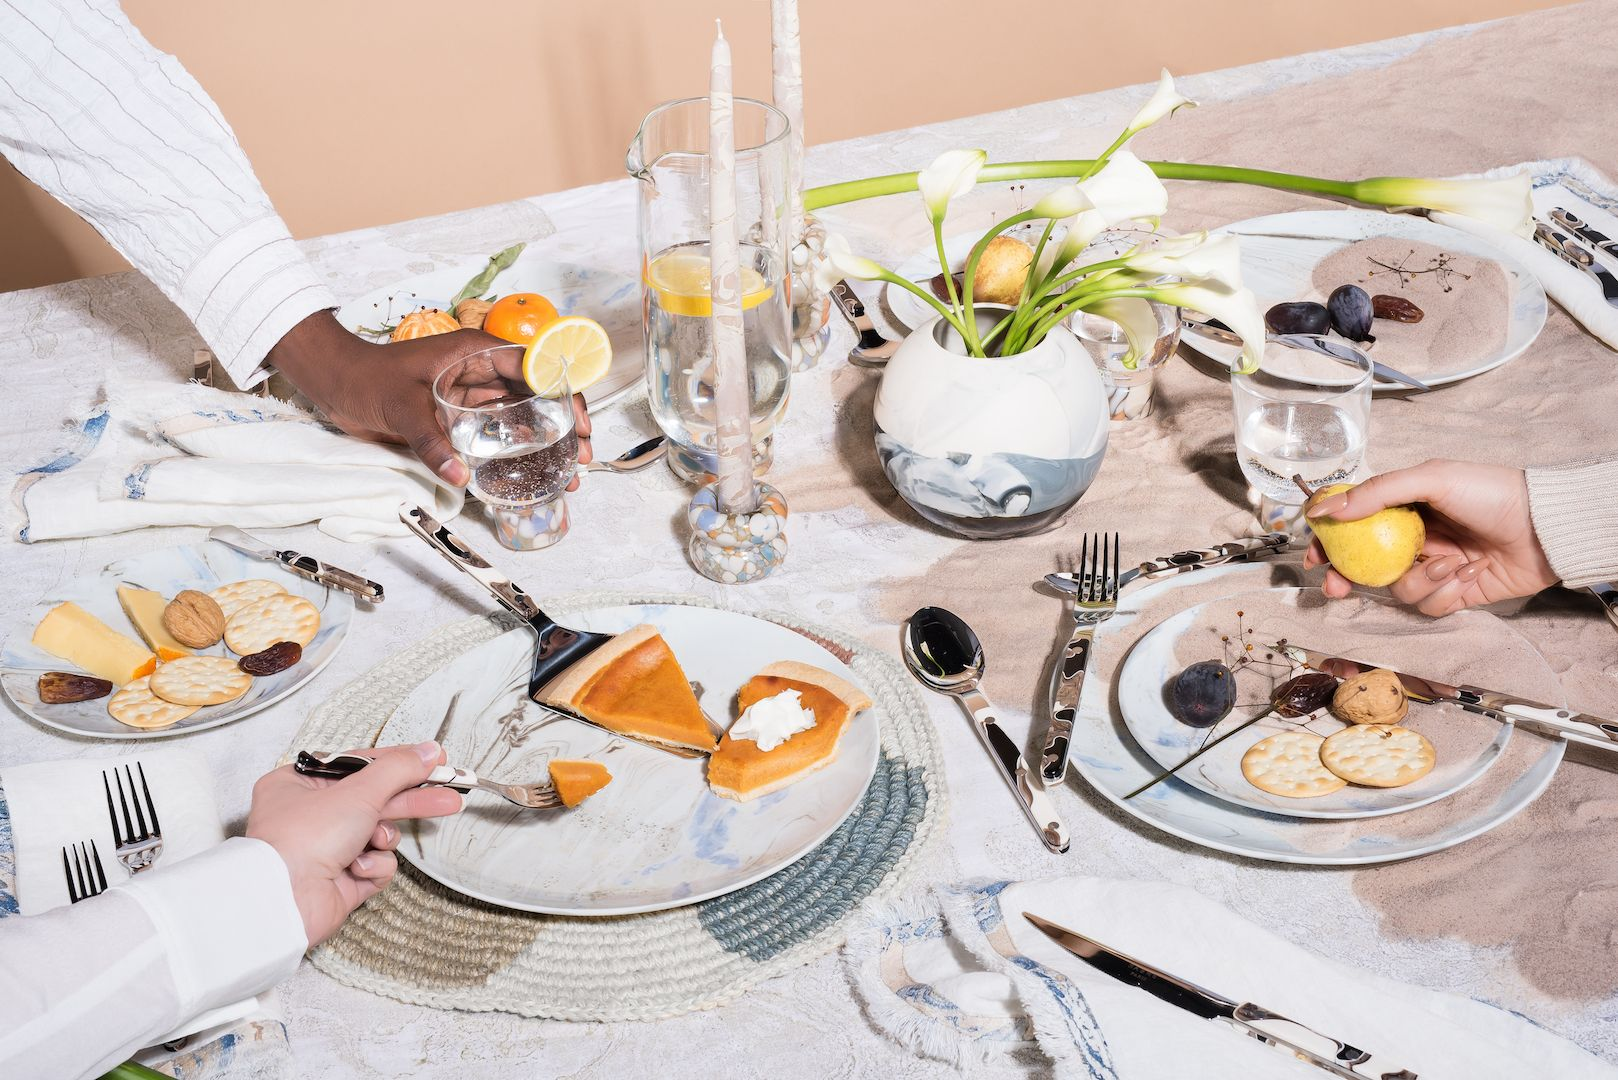 Misette Is Reimagining the Art of the Tablescape